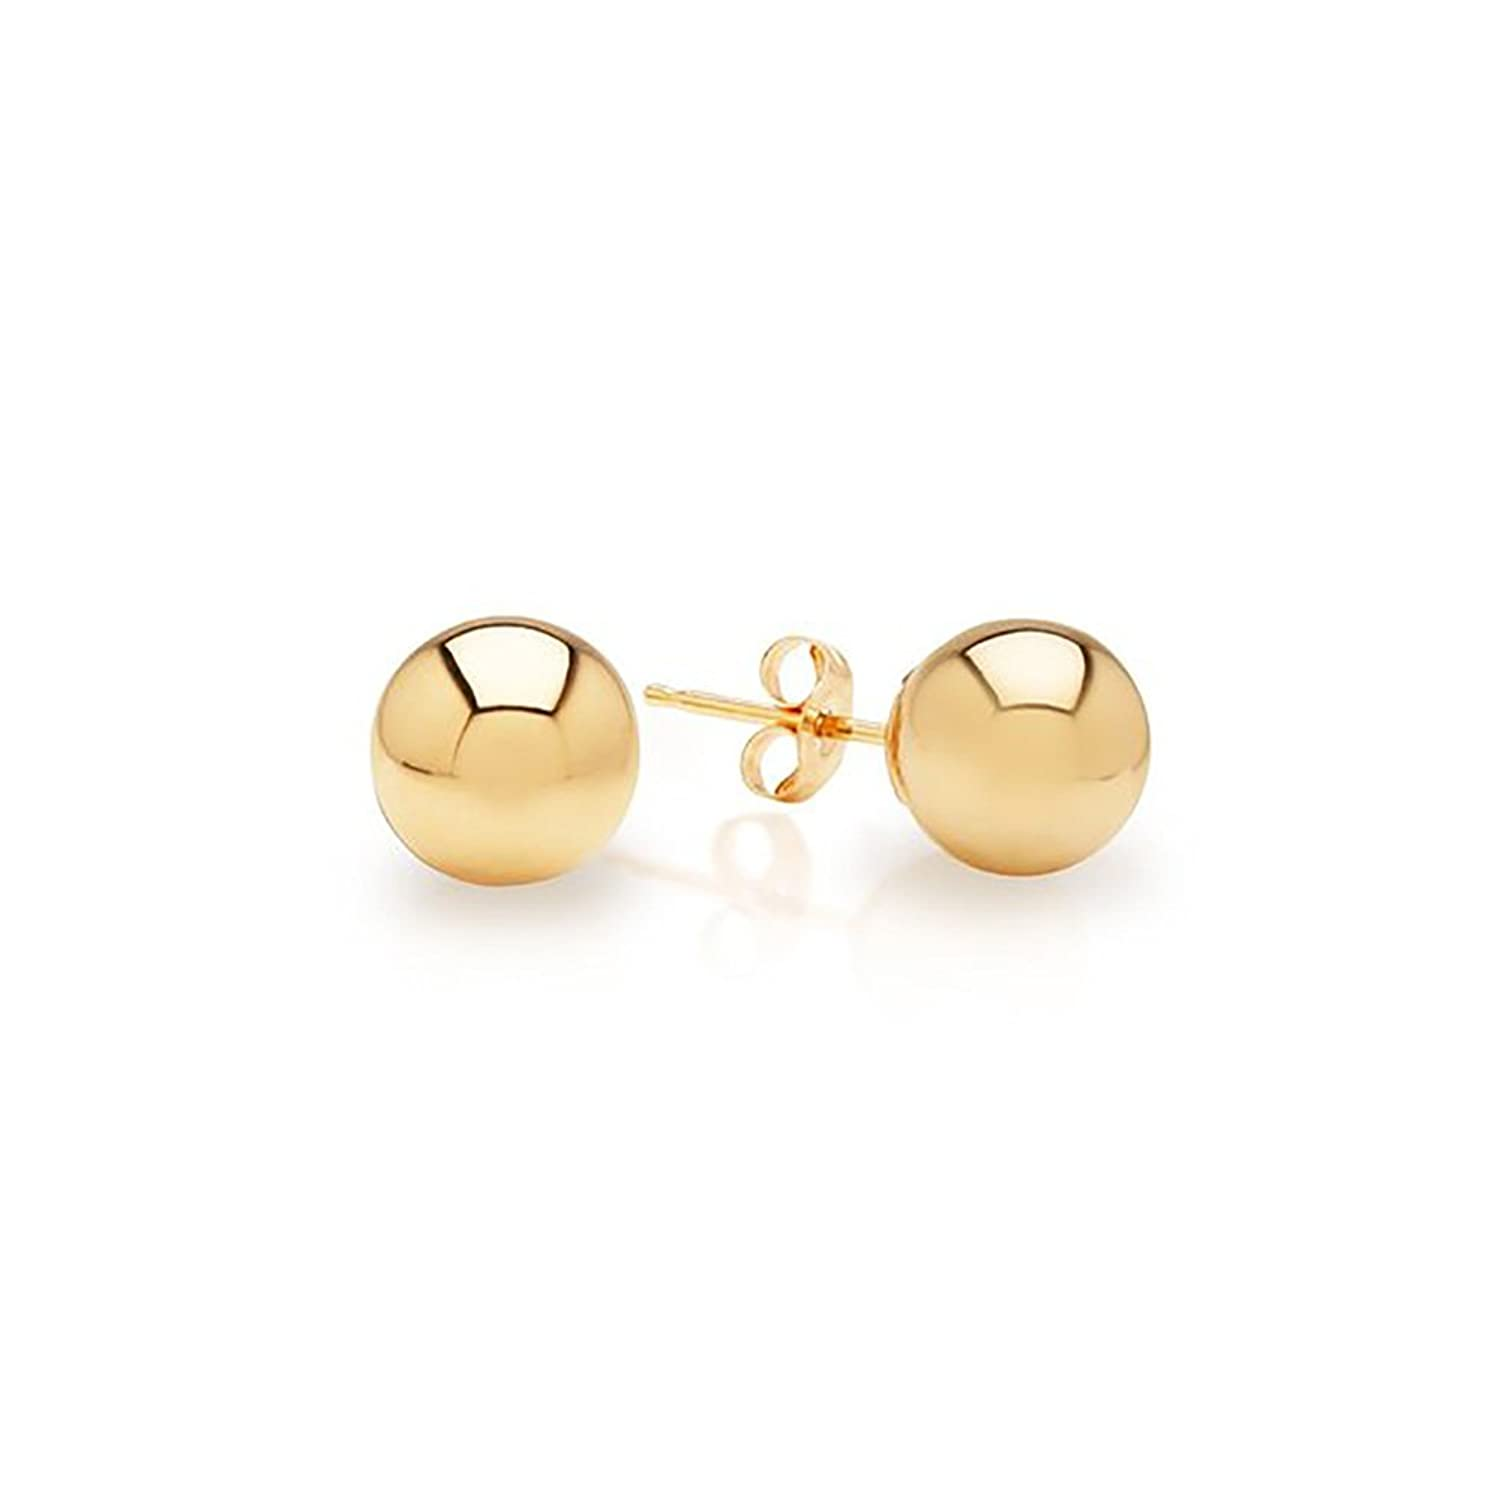 14k Yellow Gold Ball Stud Earrings Pushback 3 4 5 6 7 8 10 12 14